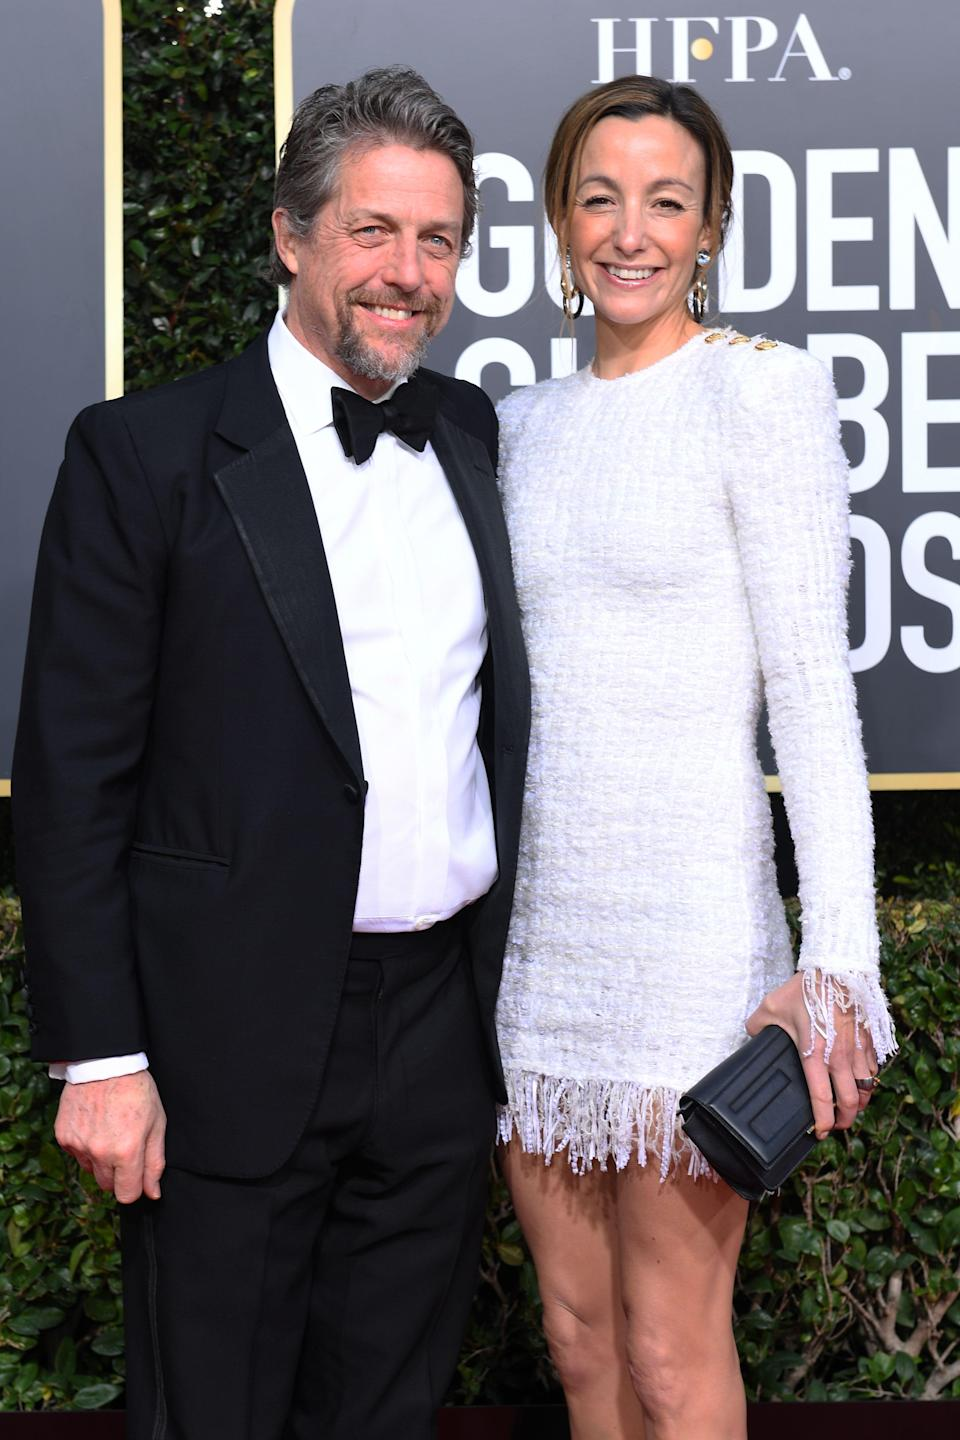 Best Performance by an Actor in a Limited Series or Motion Picture Made for Television for 'A Very English Scandal' nominee Hugh Grant (L) and his wife producer Anna Elisabet Eberstein arrive for the 76th annual Golden Globe Awards on January 6, 2019. (Photo by VALERIE MACON / AFP)